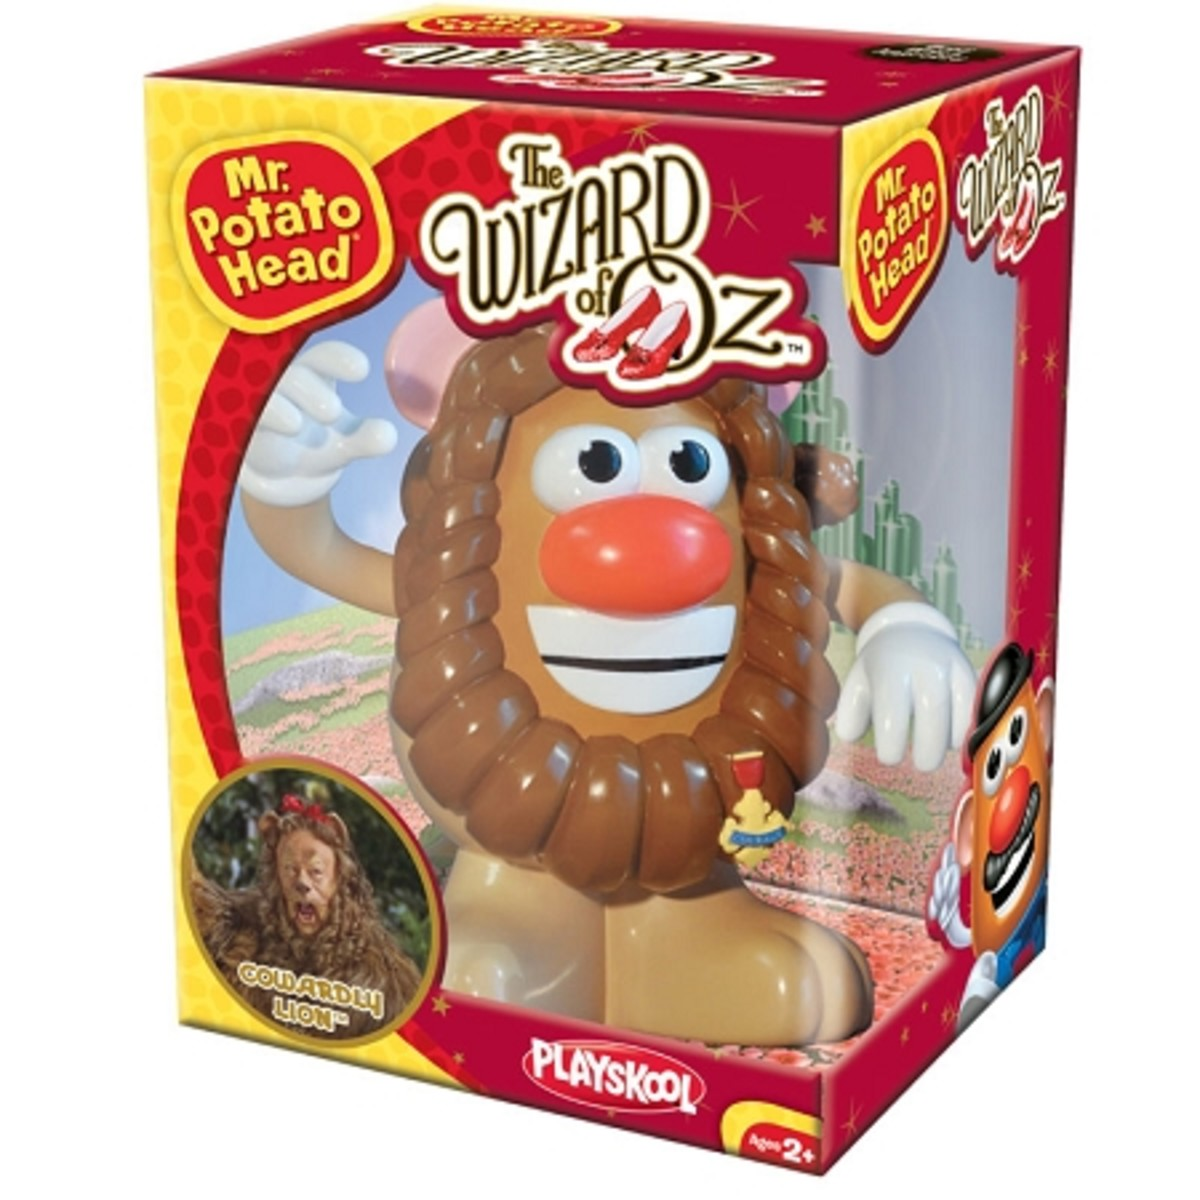 the-wizard-of-oz-dorothy-and-friends-mr-potato-heads